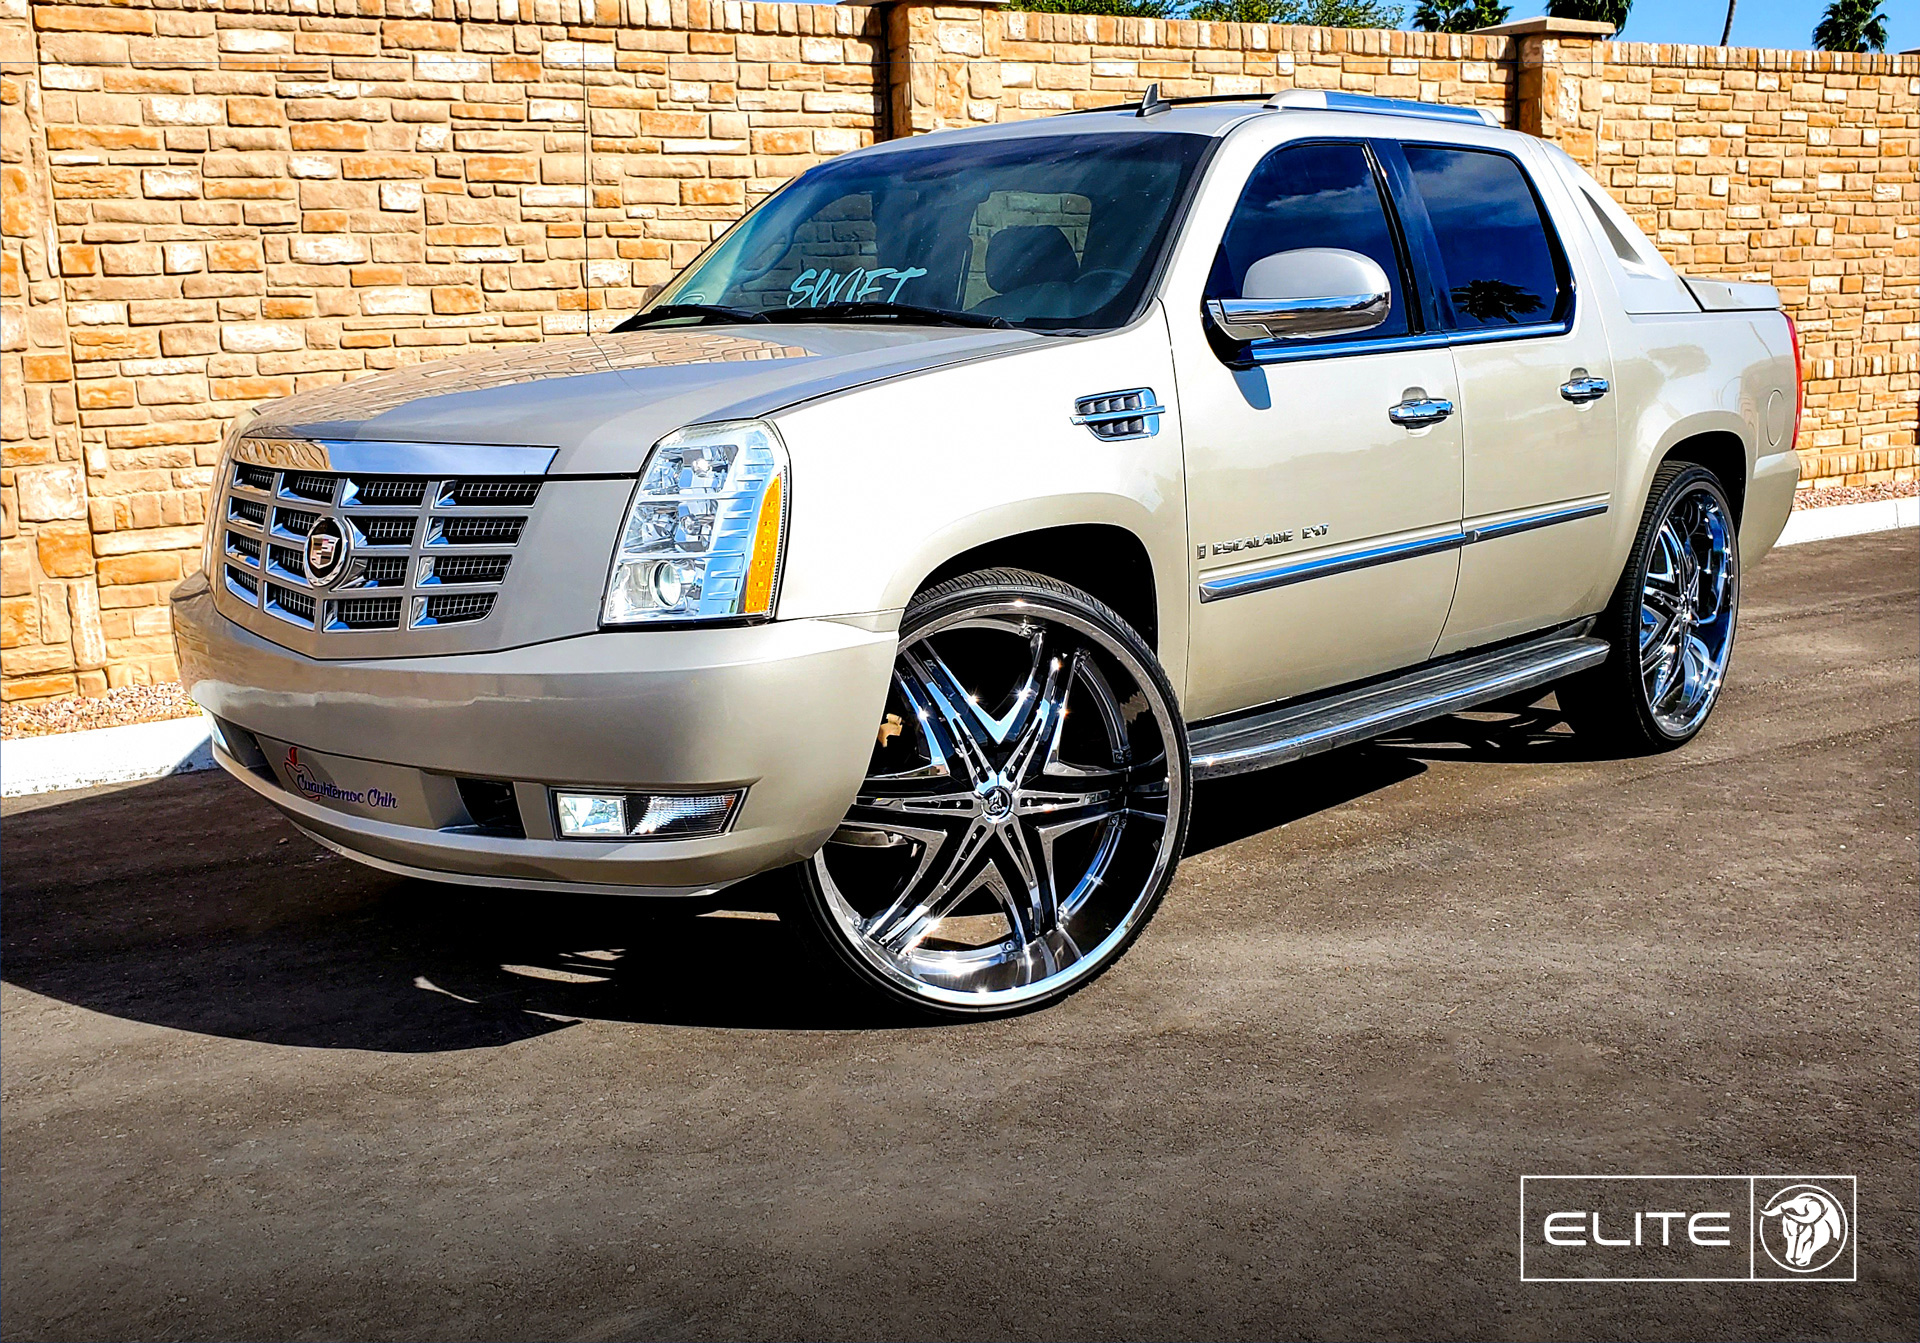 Diablo Wheels - Elite on a Cadillac Escalade EXT Tan